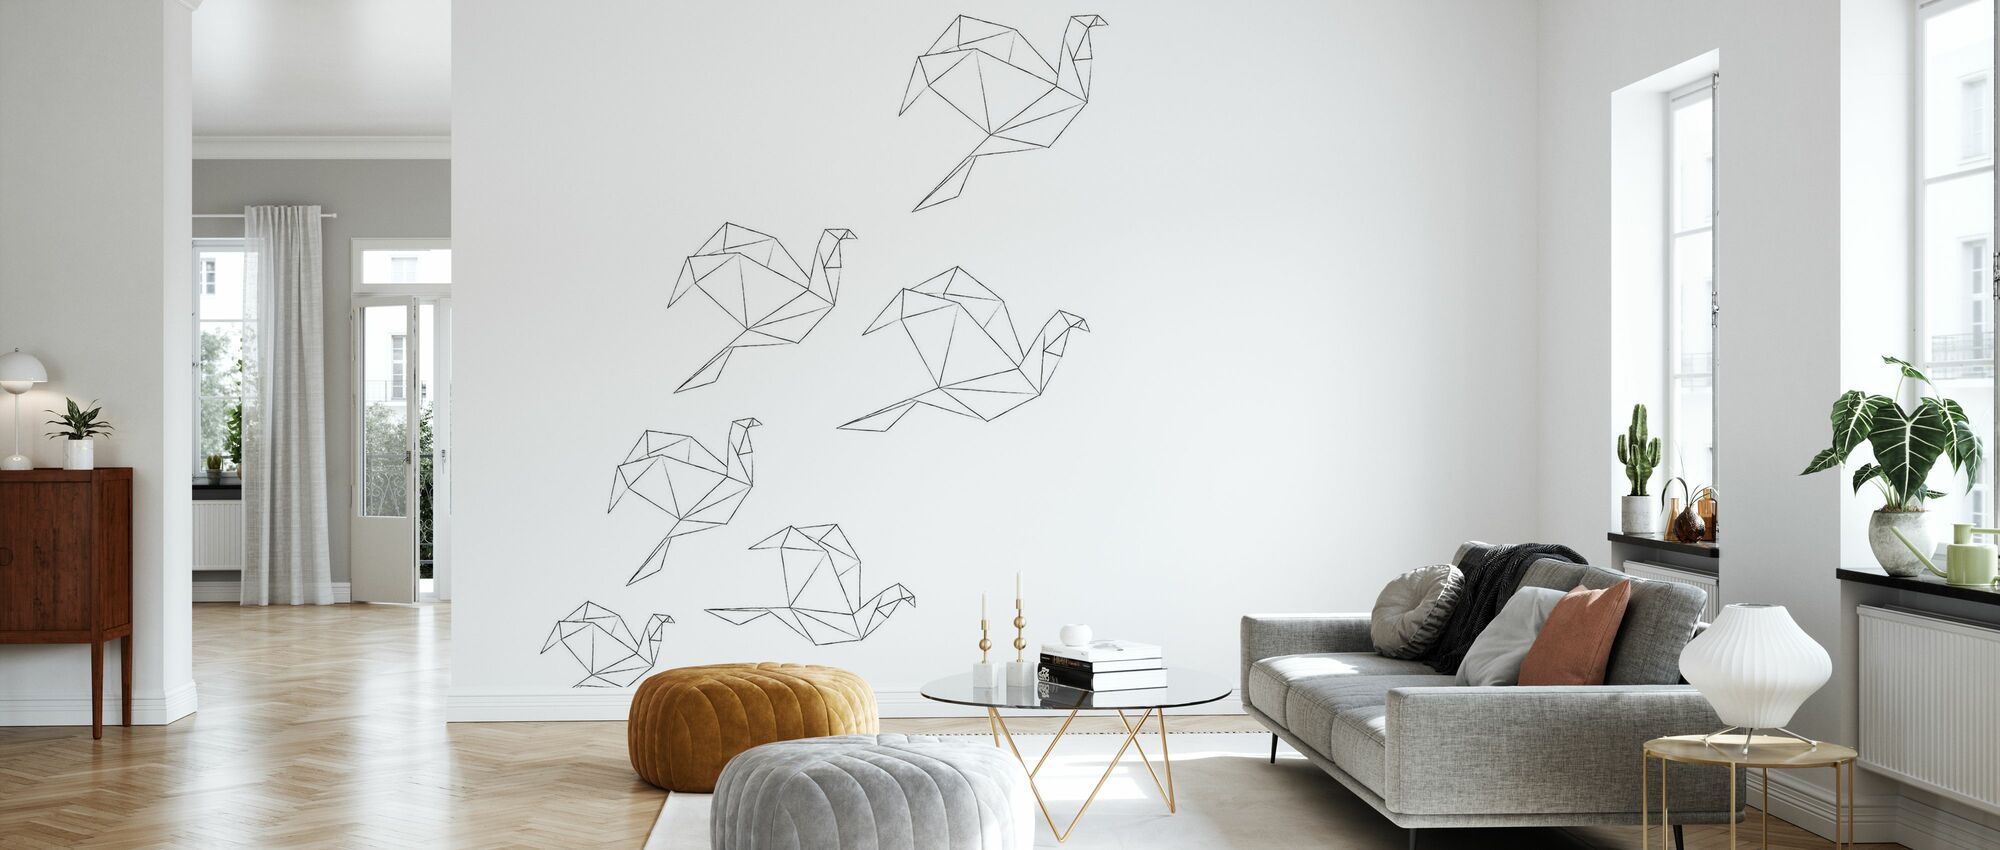 Origami-lineart - Behang - Woonkamer